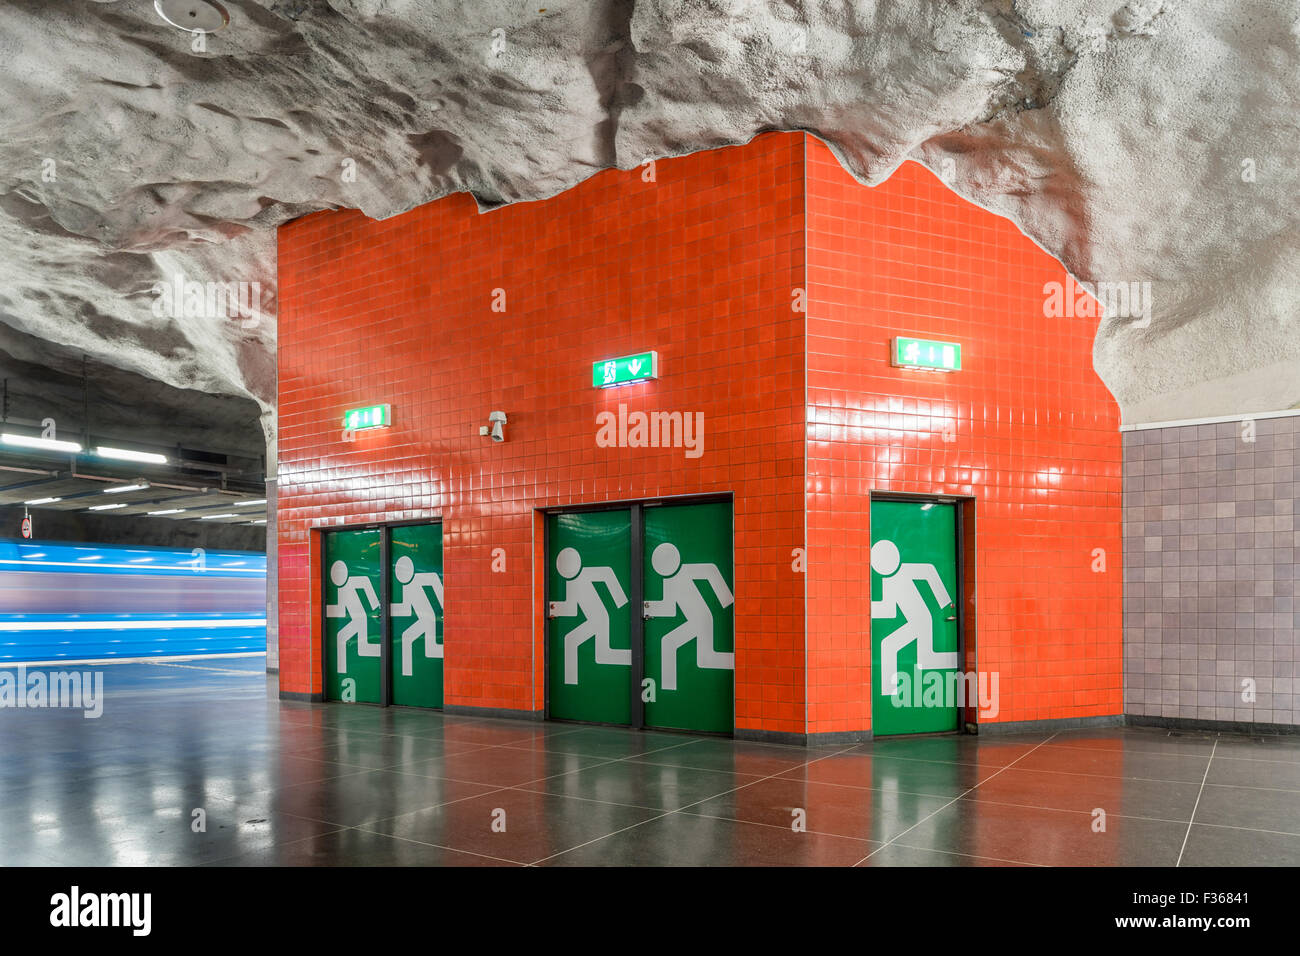 Inside Stadion subway station in Stockholm Tunnelbana - Stock Image